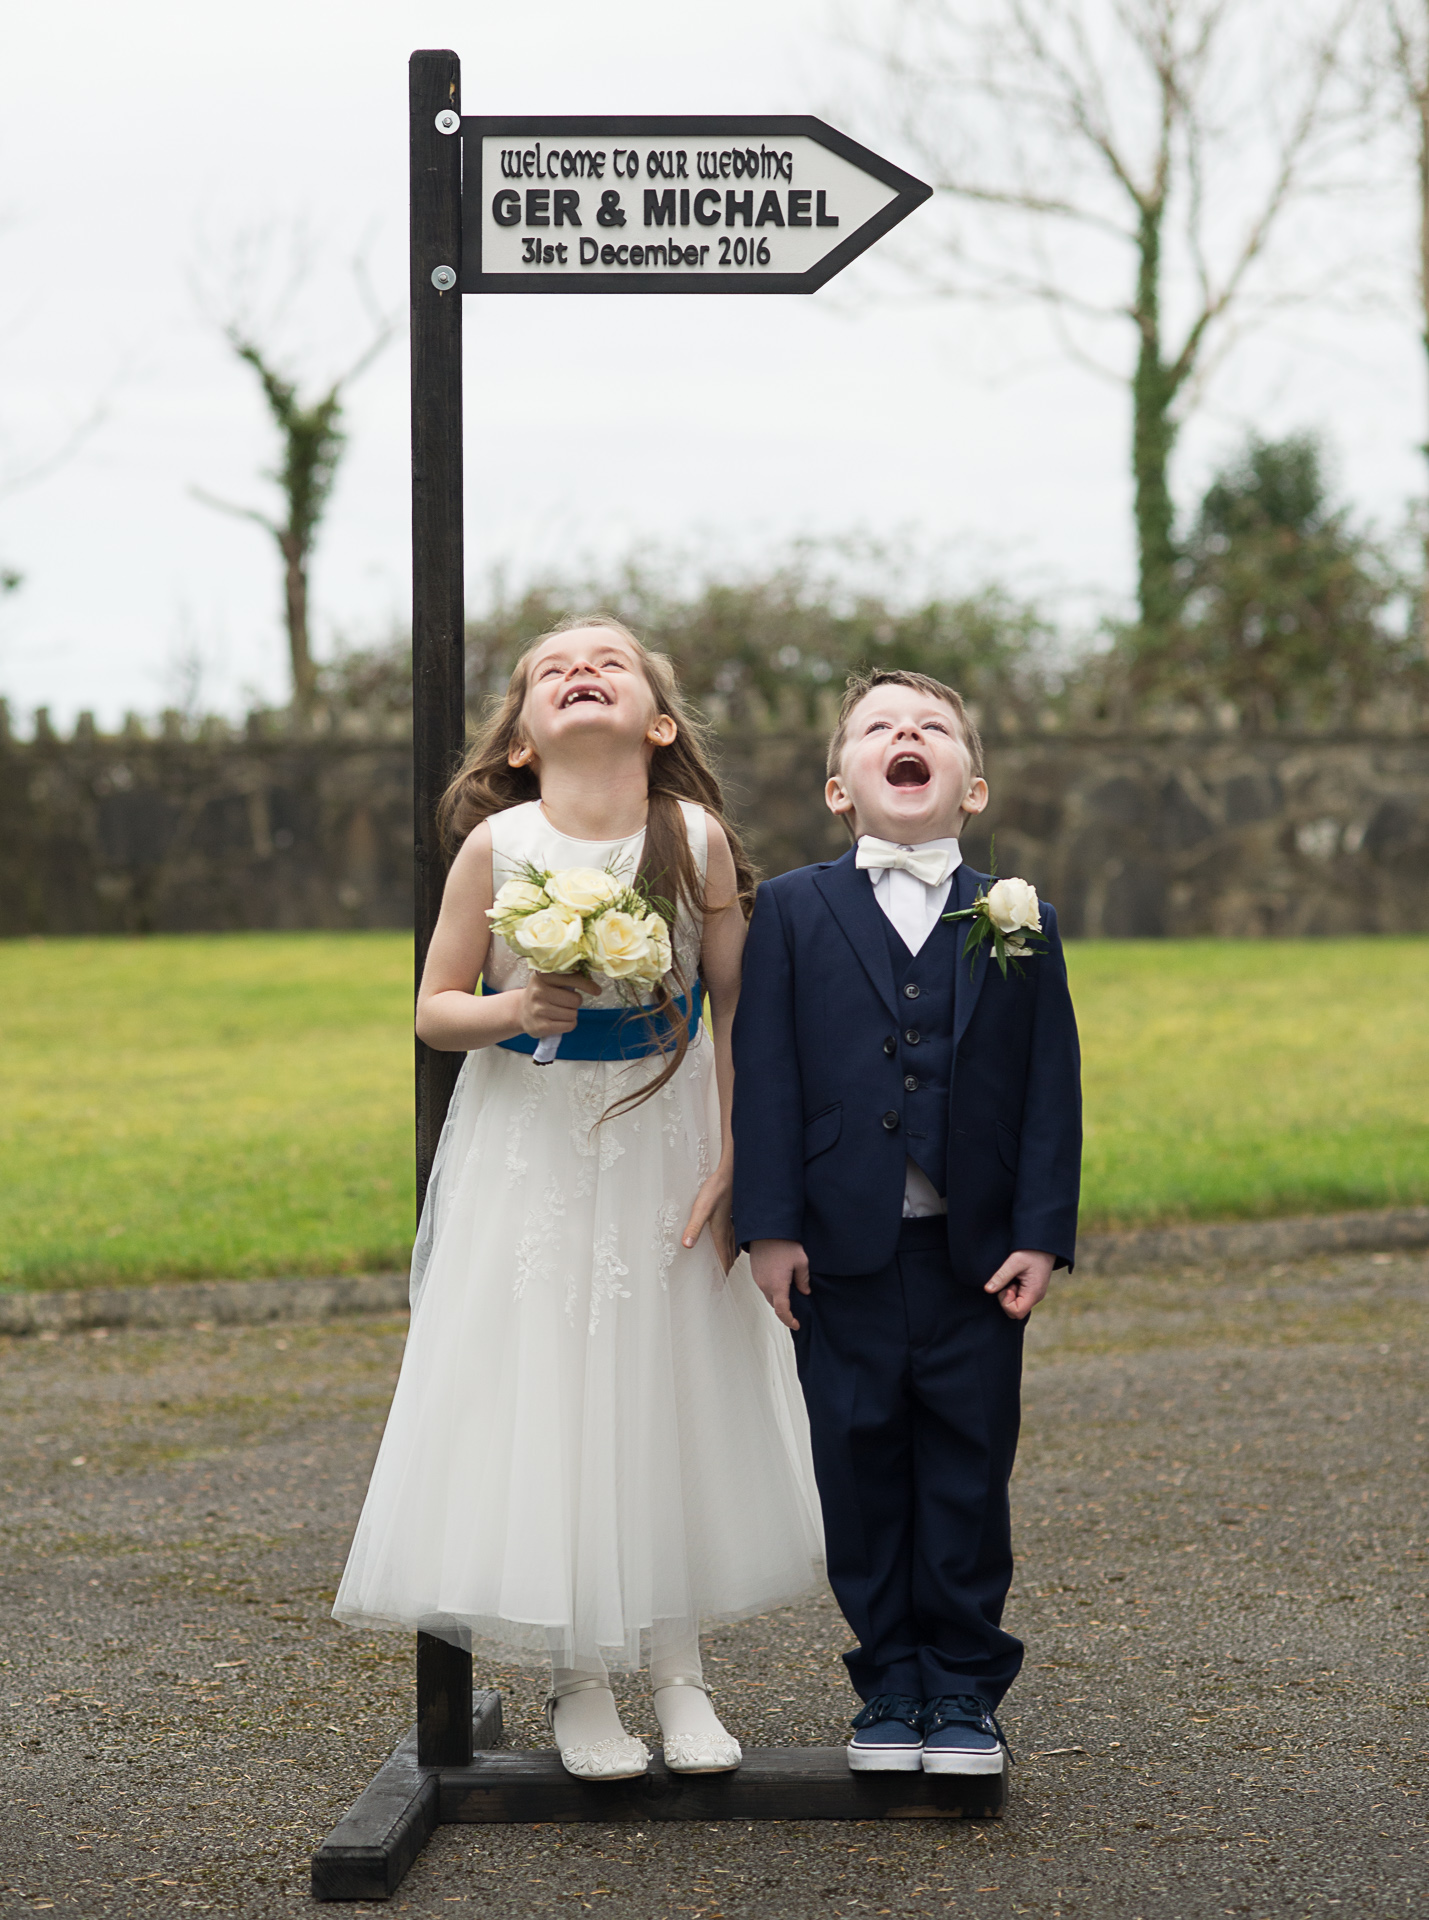 M&M Photography - Wedding Photography | weddingsonline